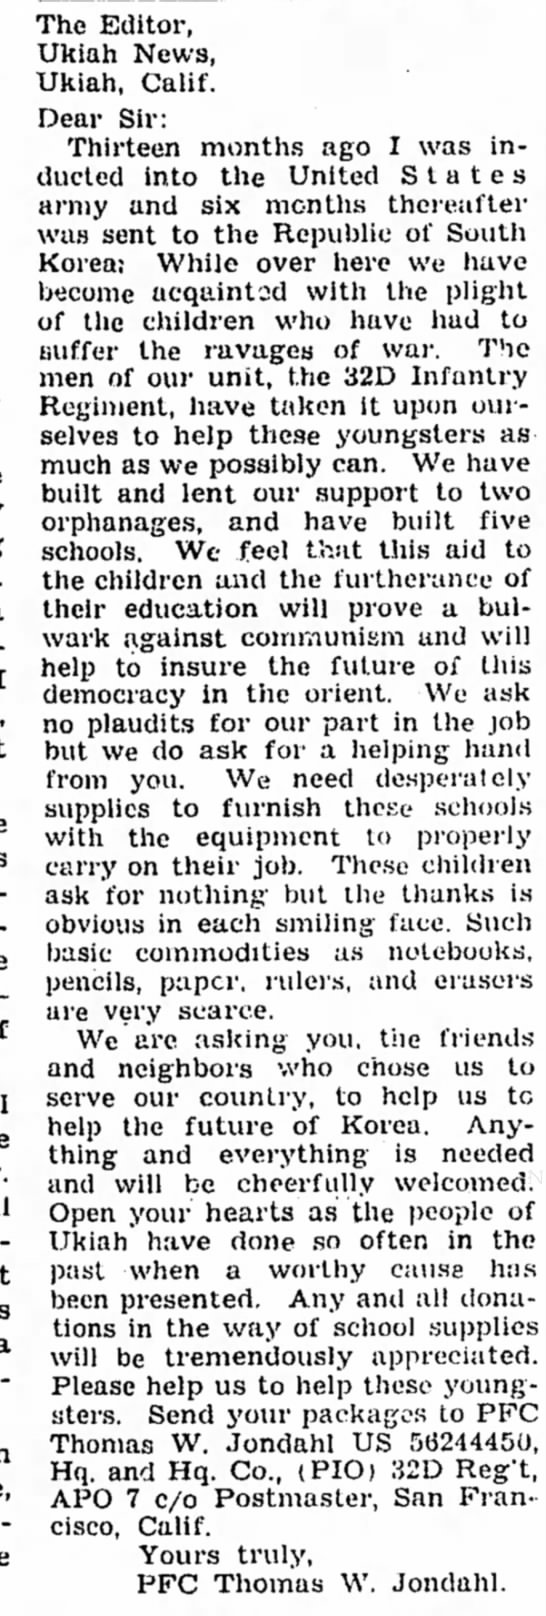 Thomas W Jondahl letter to the editor about overseas children help 1955 -